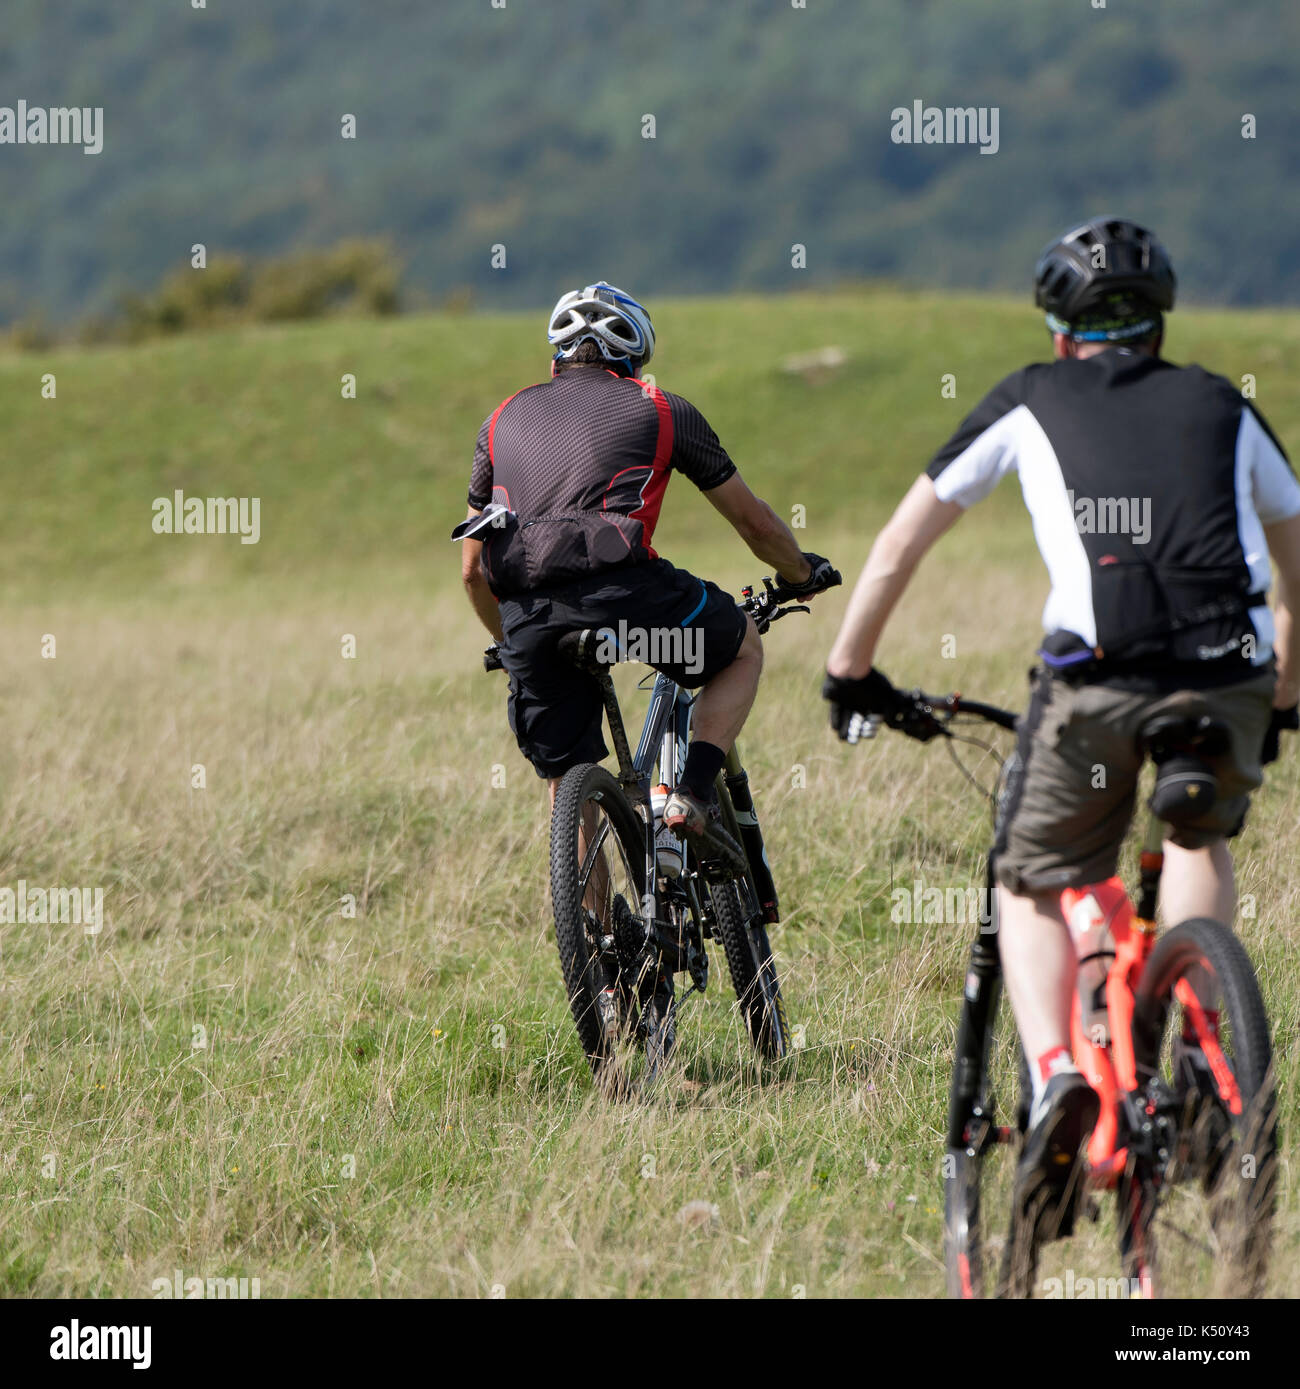 Minchinhampton Common in the southern Cotswolds Gloucestershire England UK. August 2017. Young men on mountain bikes Stock Photo